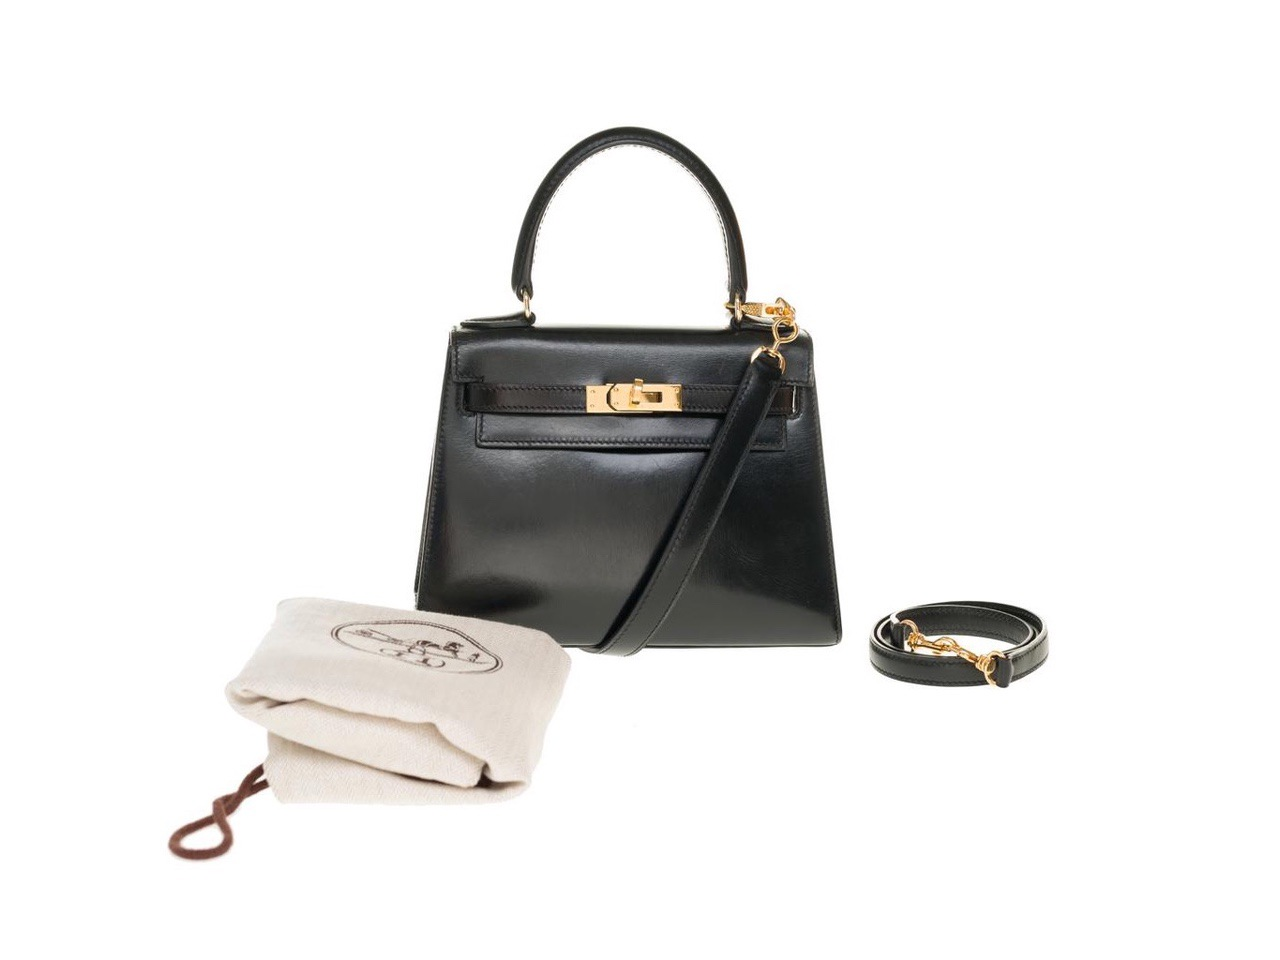 Hermès-Mini-Kelly-20-Black-7-1